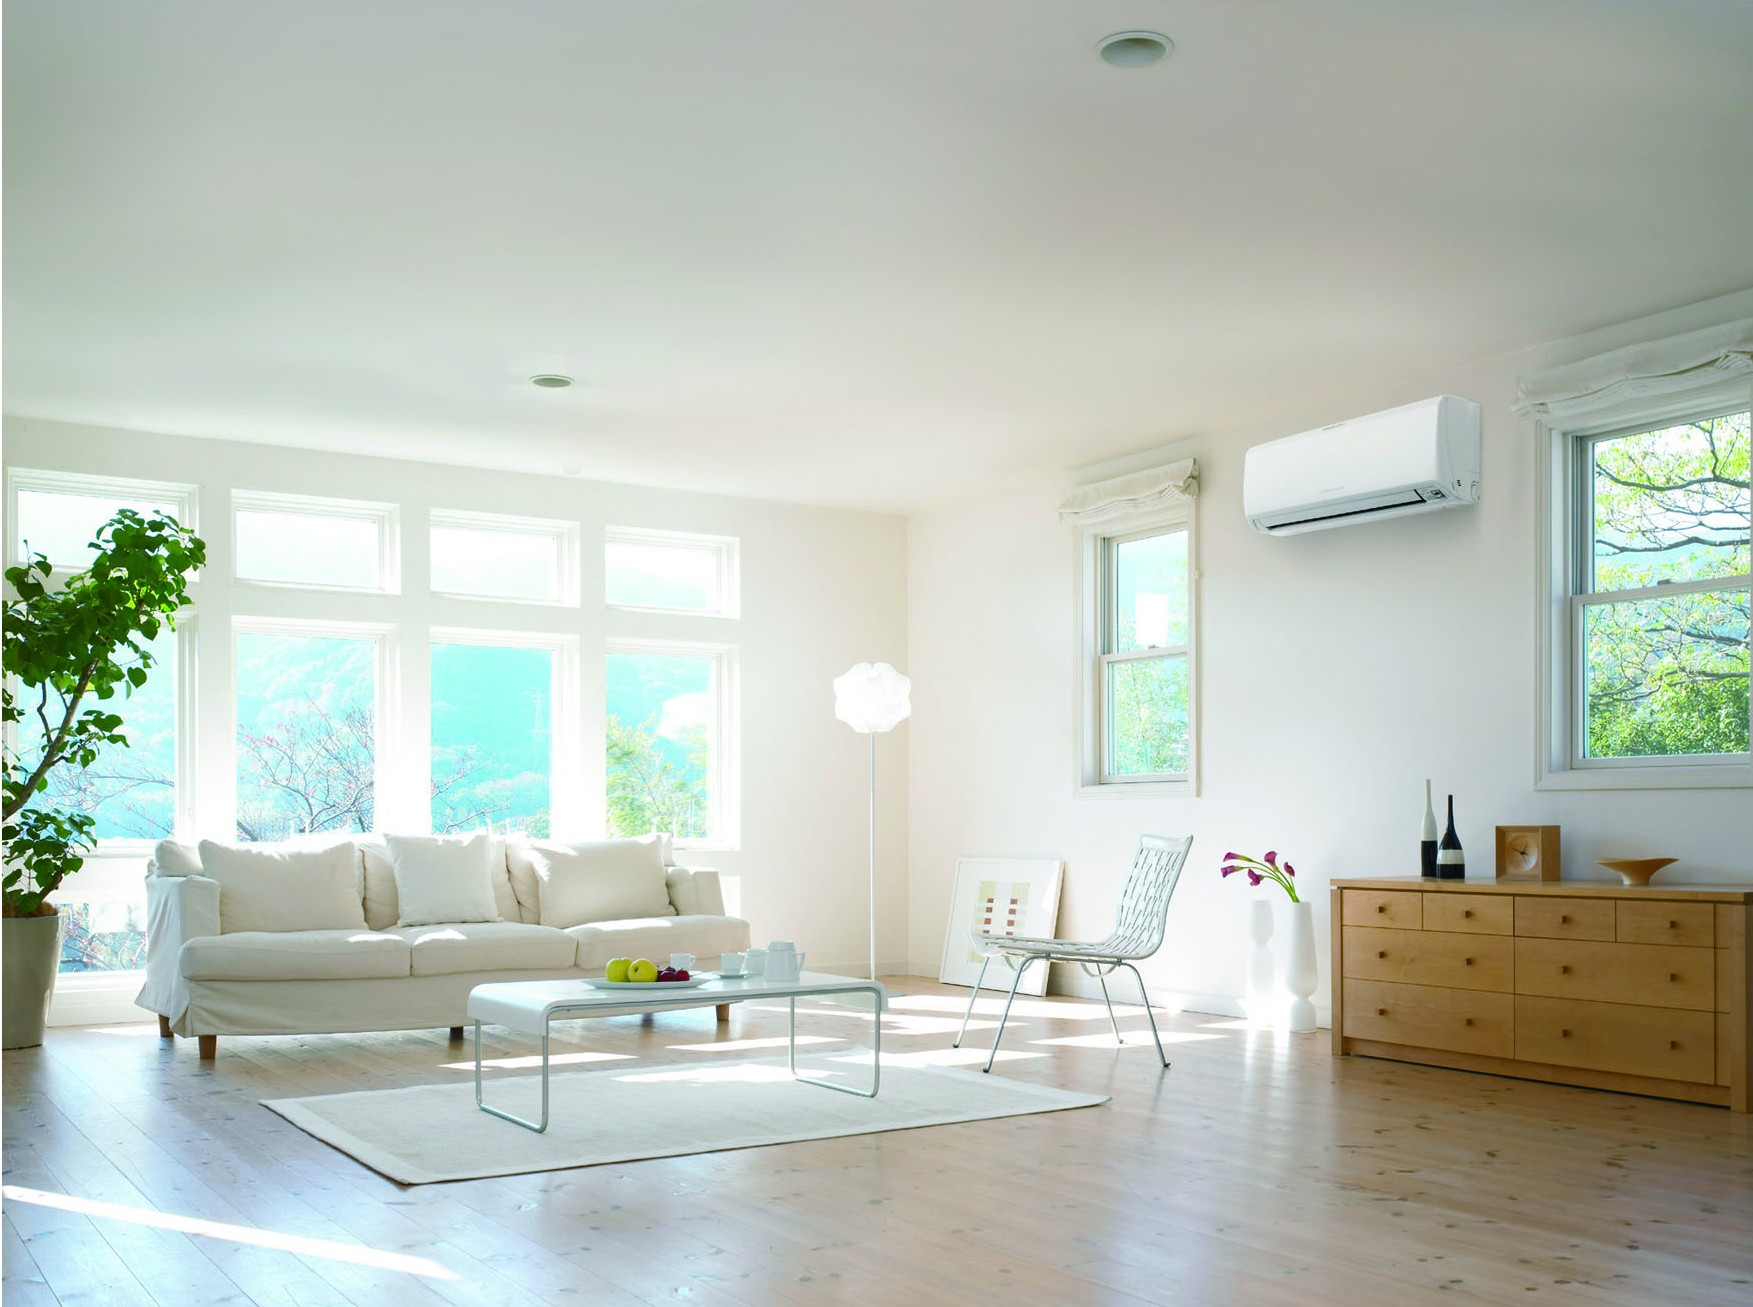 Air Conditioning East Grinstead Redhill Crawley #2D3A0C